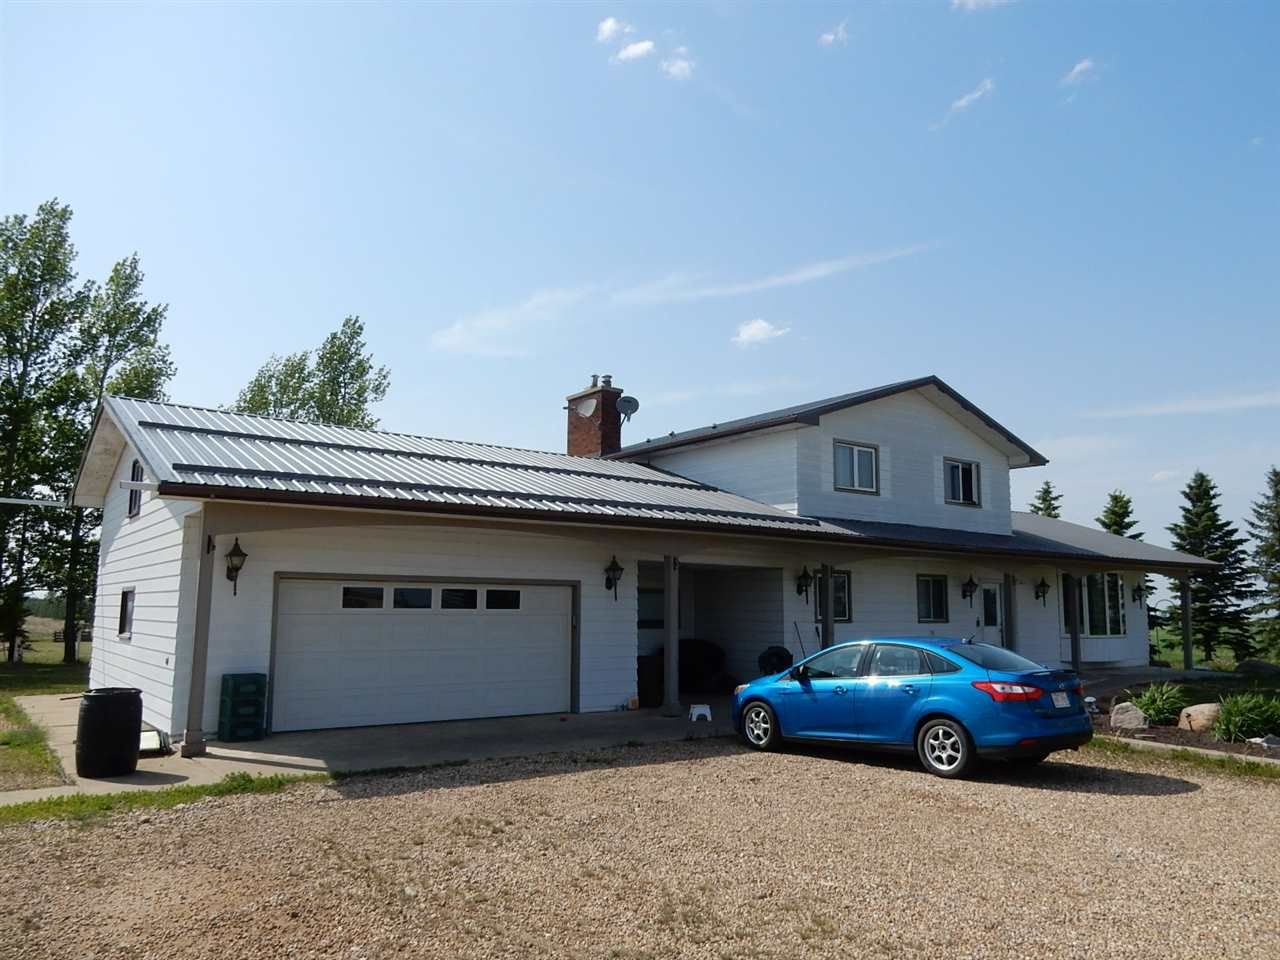 Main Photo: 57520 2 Highway: Rural Sturgeon County House for sale : MLS®# E4150951